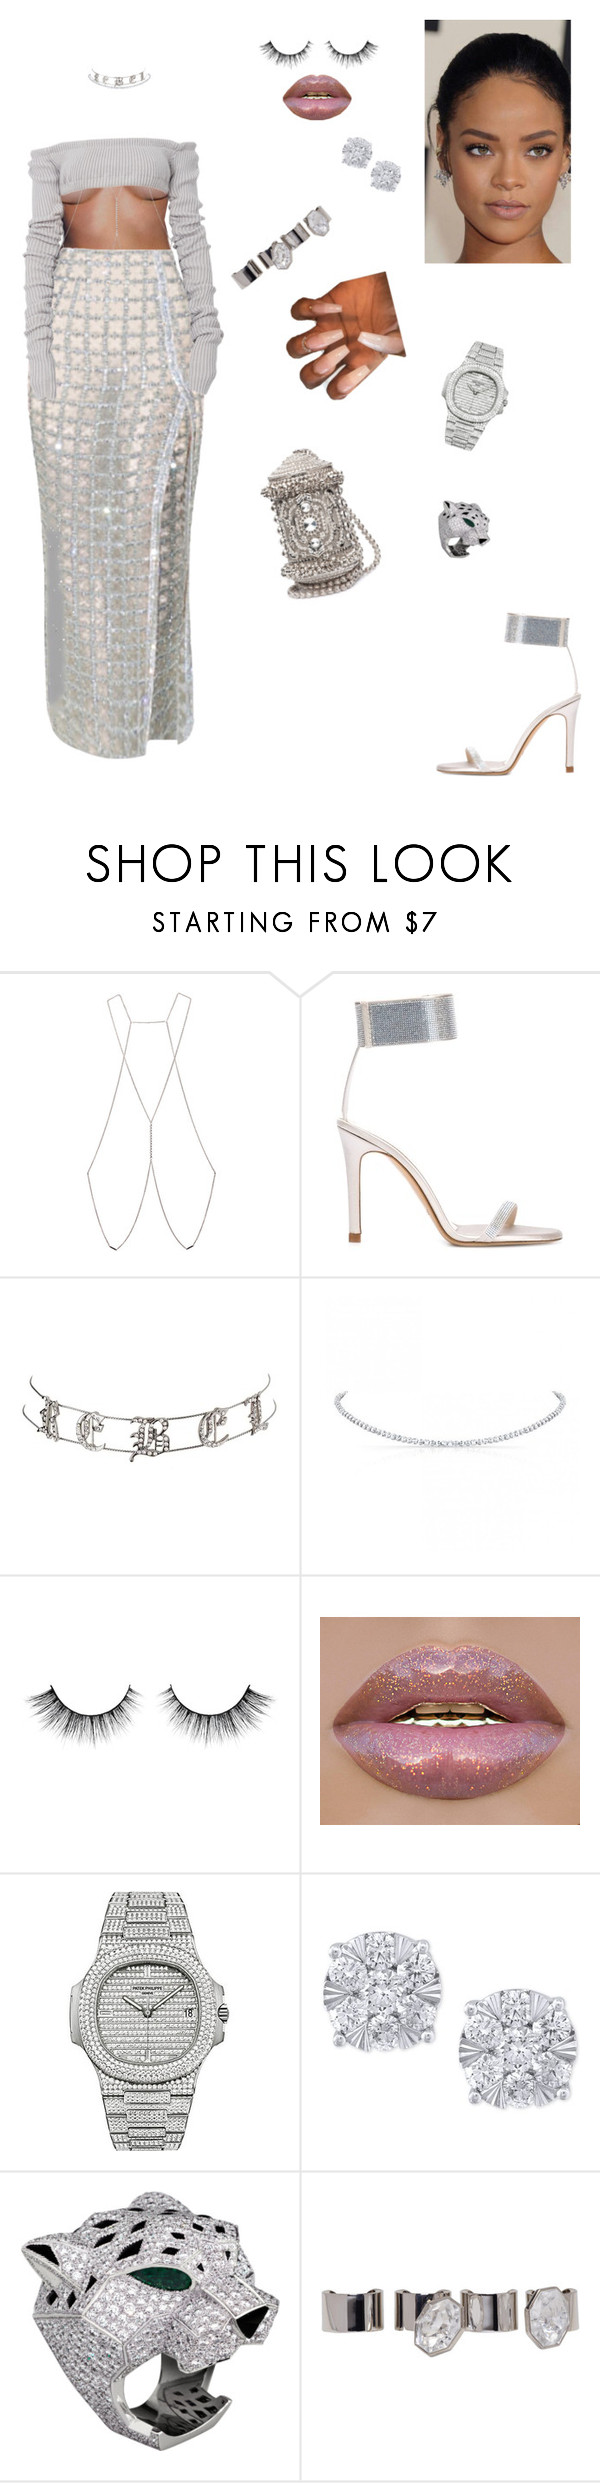 """Girls love bling💎"" by styledbystaes ❤ liked on Polyvore featuring Bliss Lau, Pedro García, Charlotte Russe, Patek Philippe, Effy Jewelry and Maison Margiela"